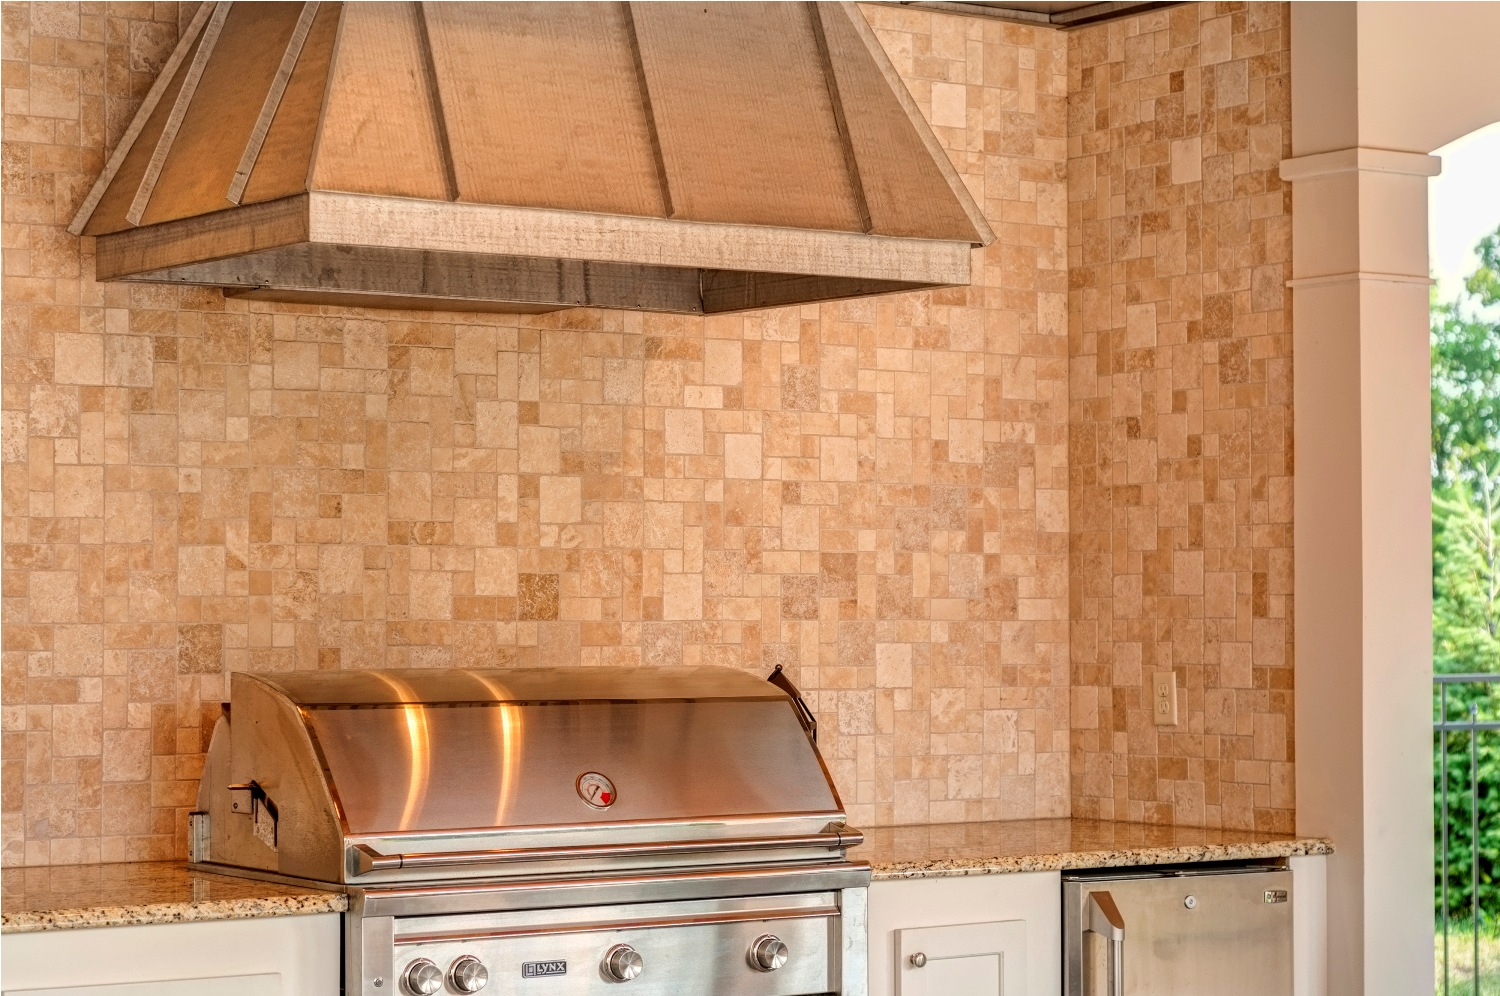 Grill Backsplash